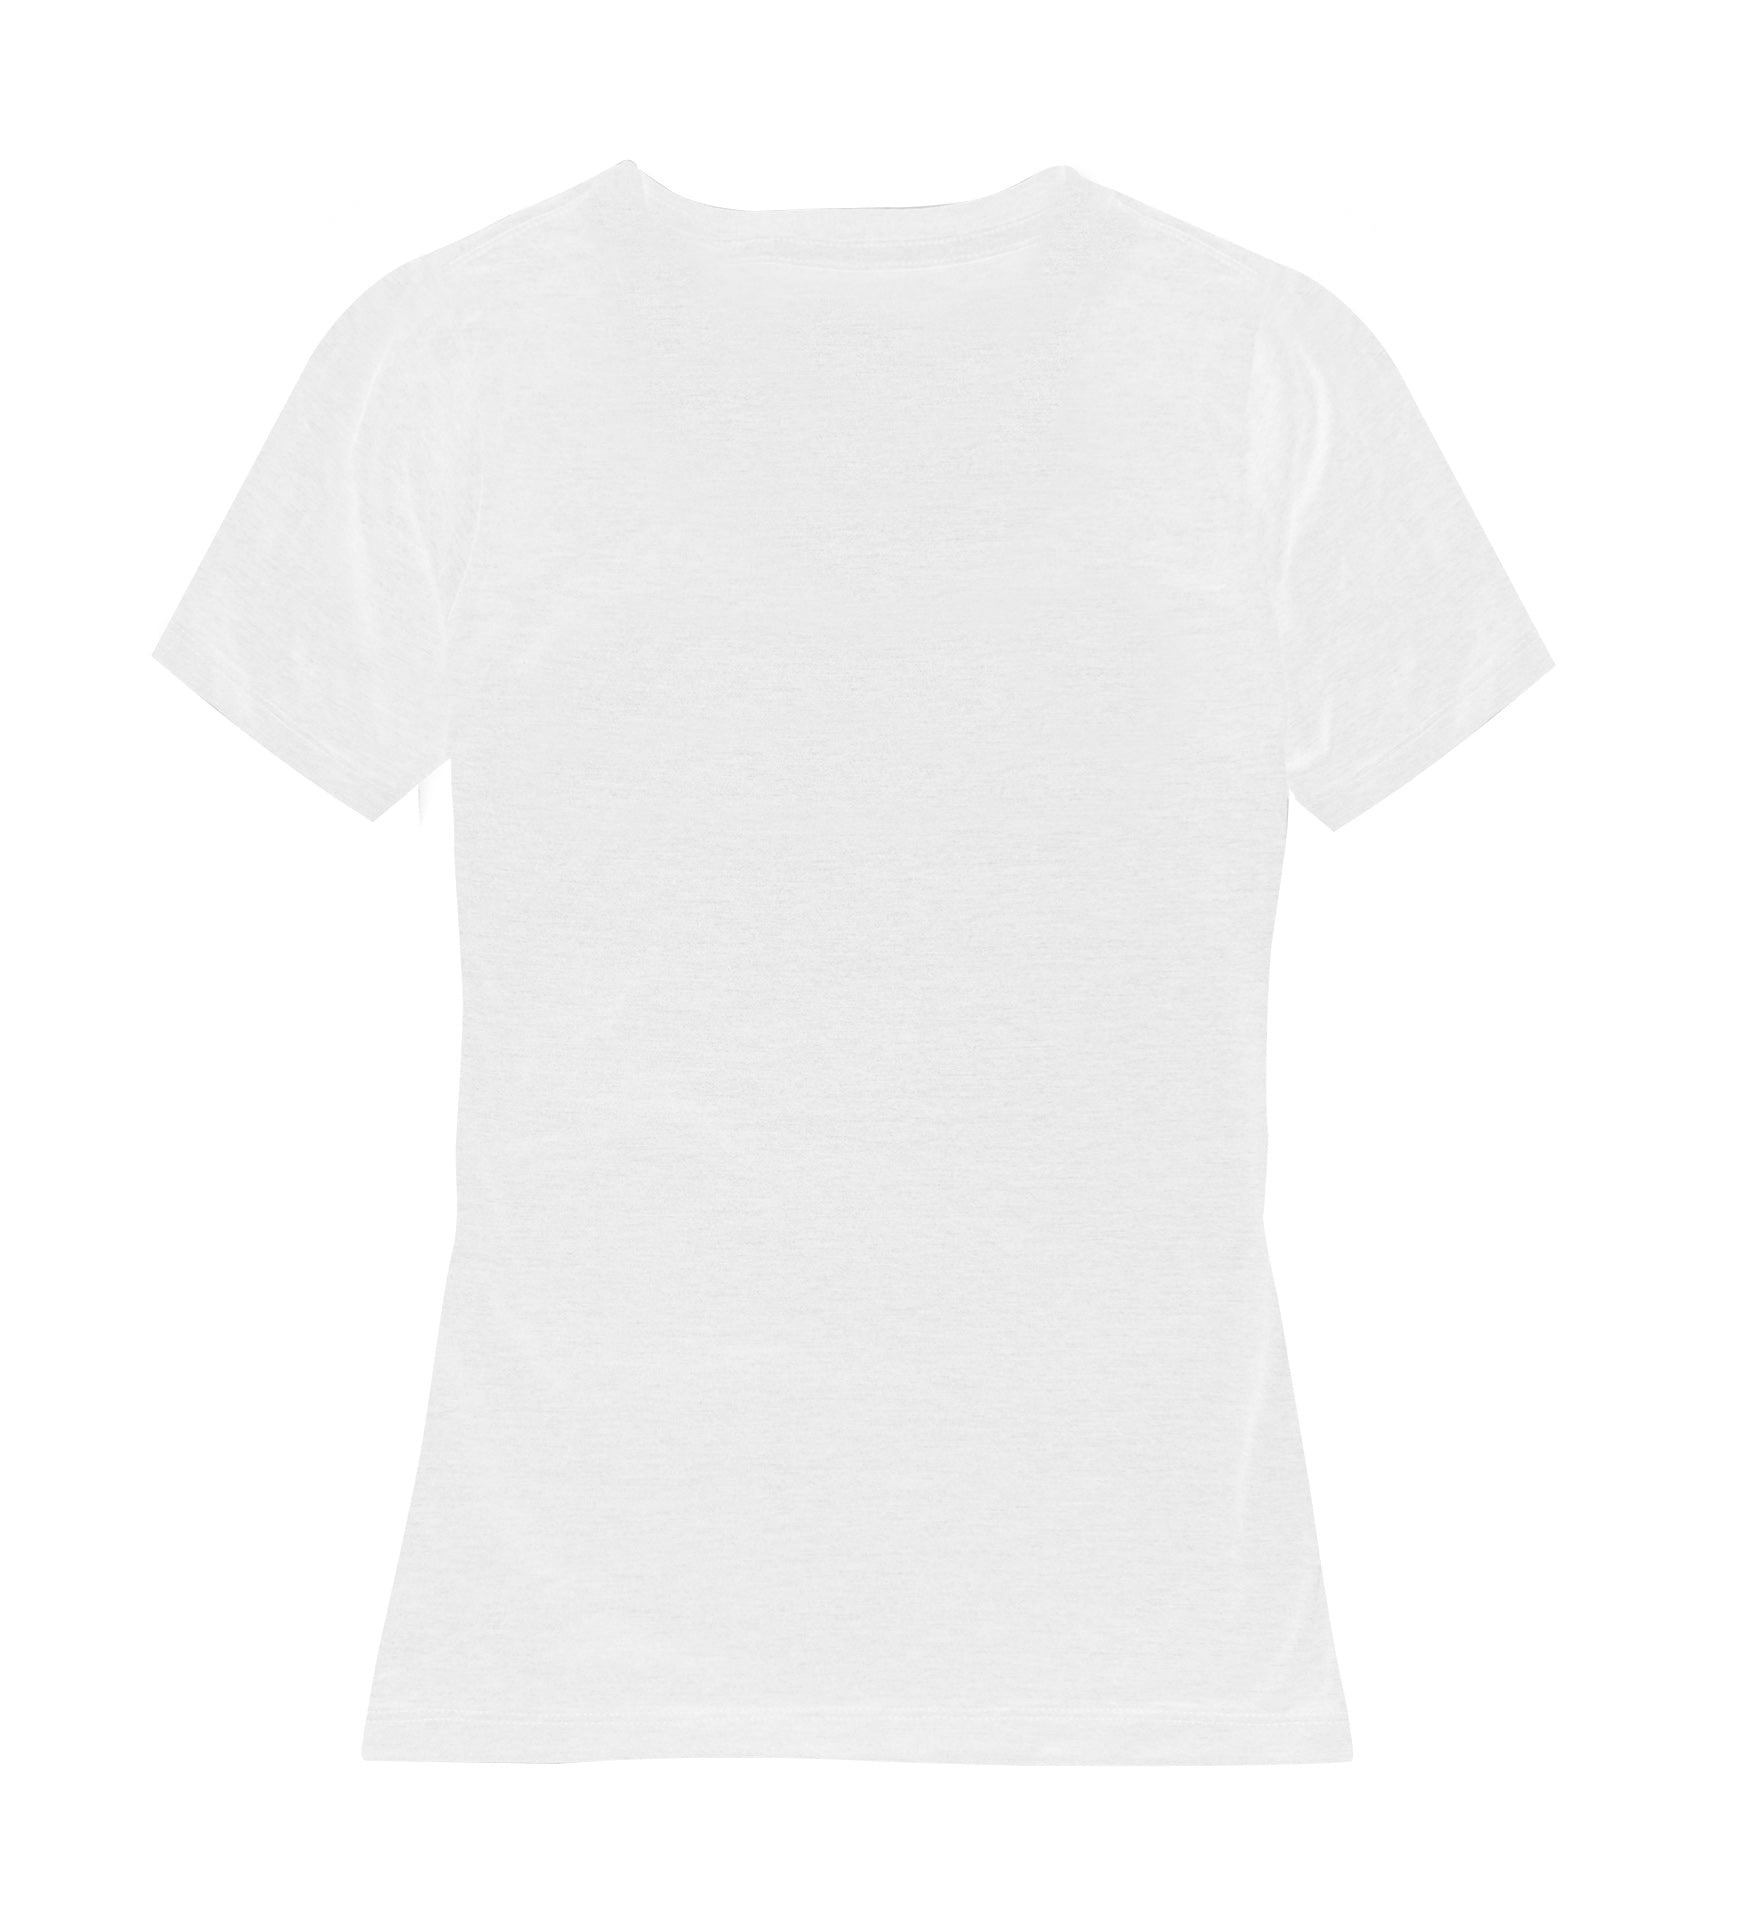 Vicious Ladies Tee - White